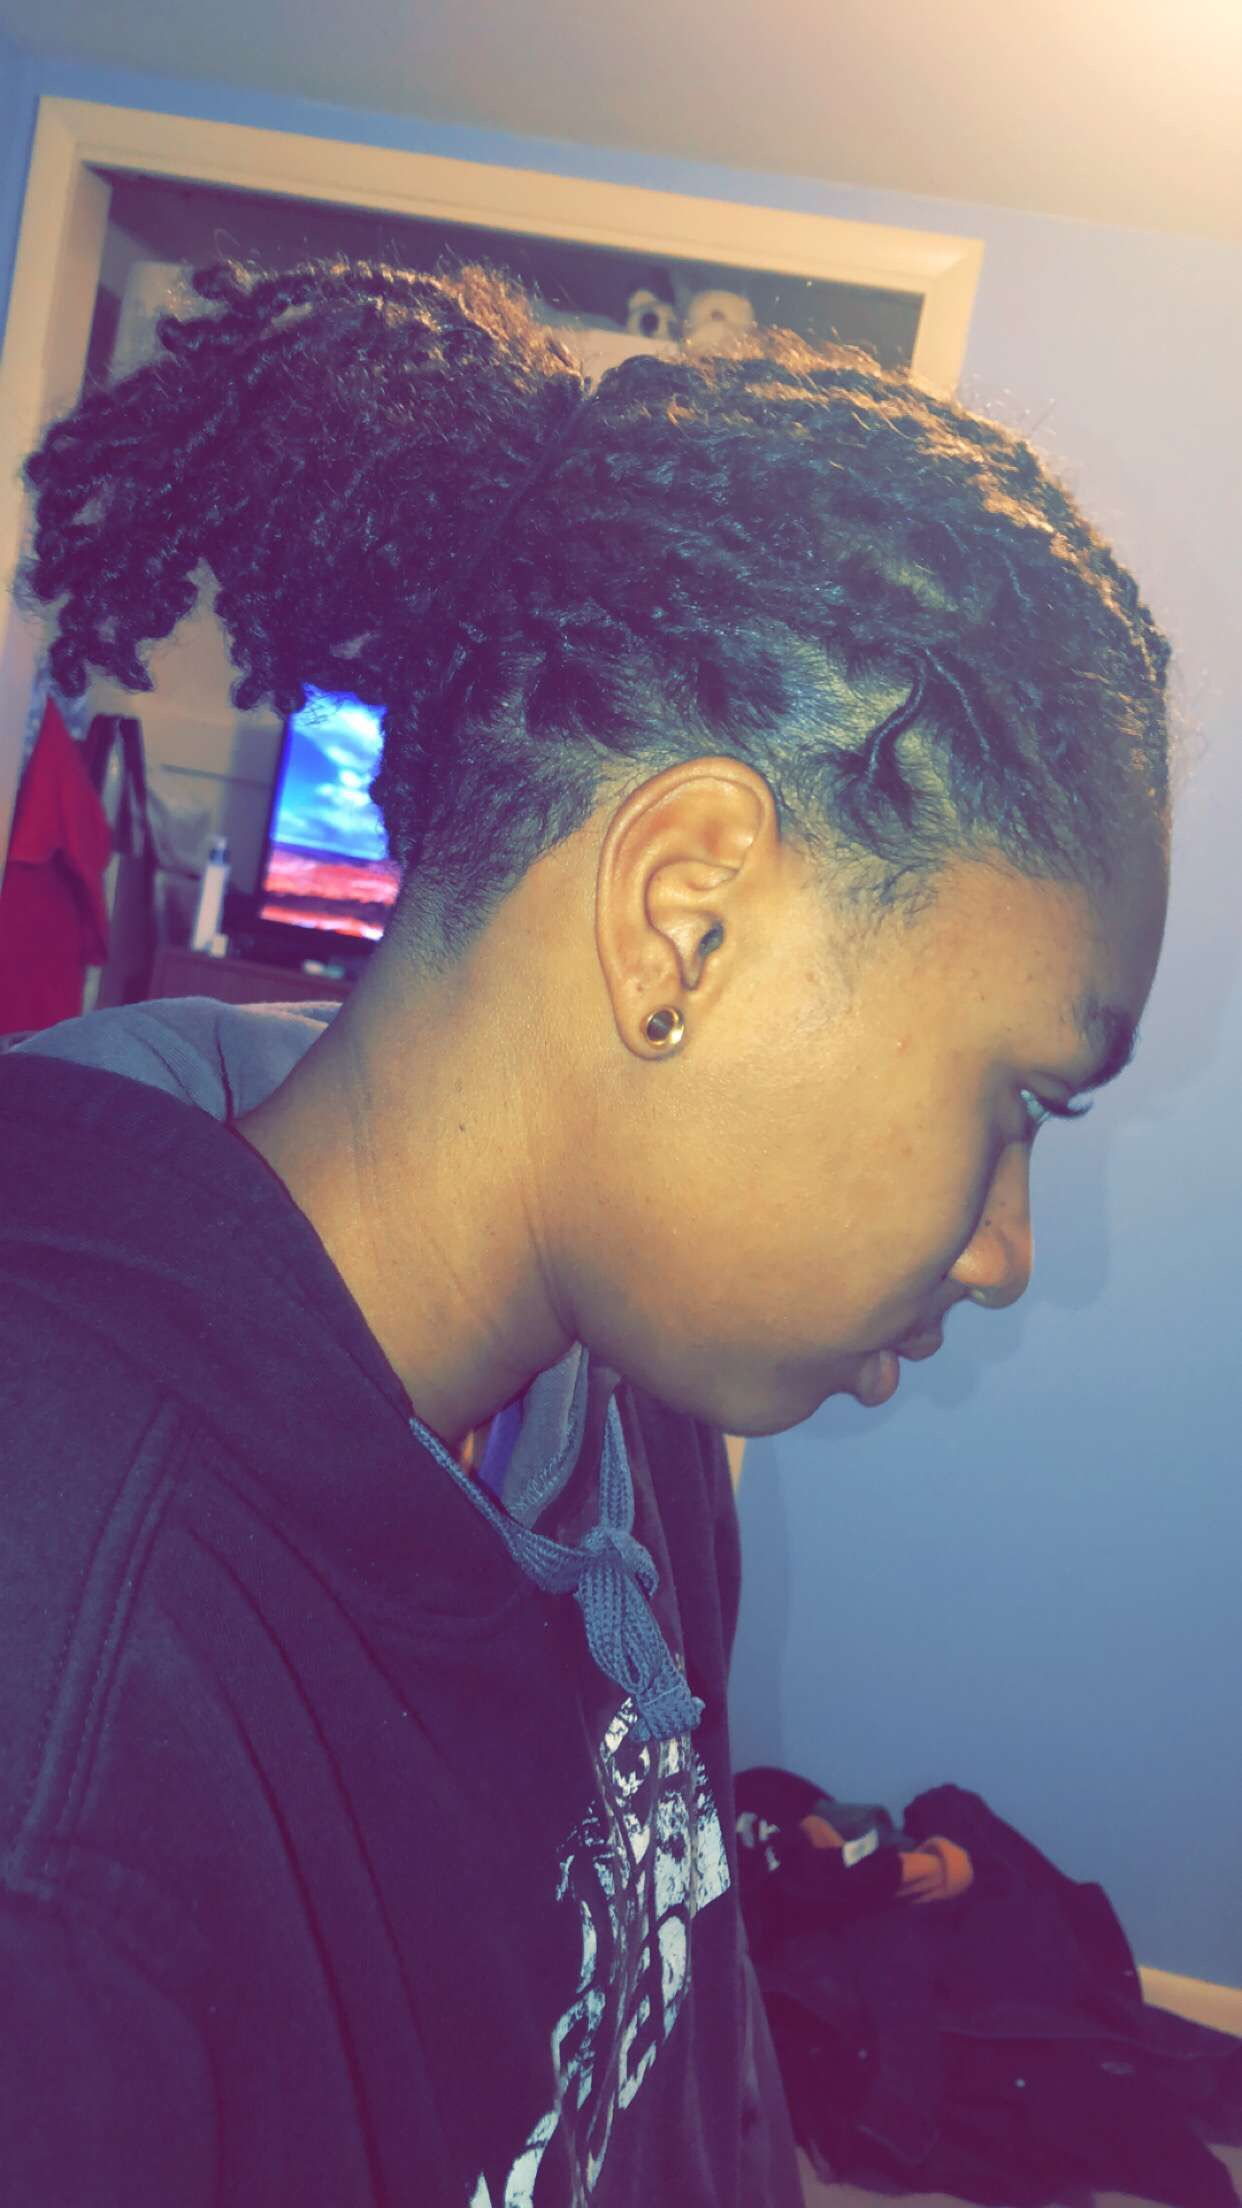 Pin By Theoneave On Locs Locs Hairstyles Cute Lesbian Couples Hair Styles